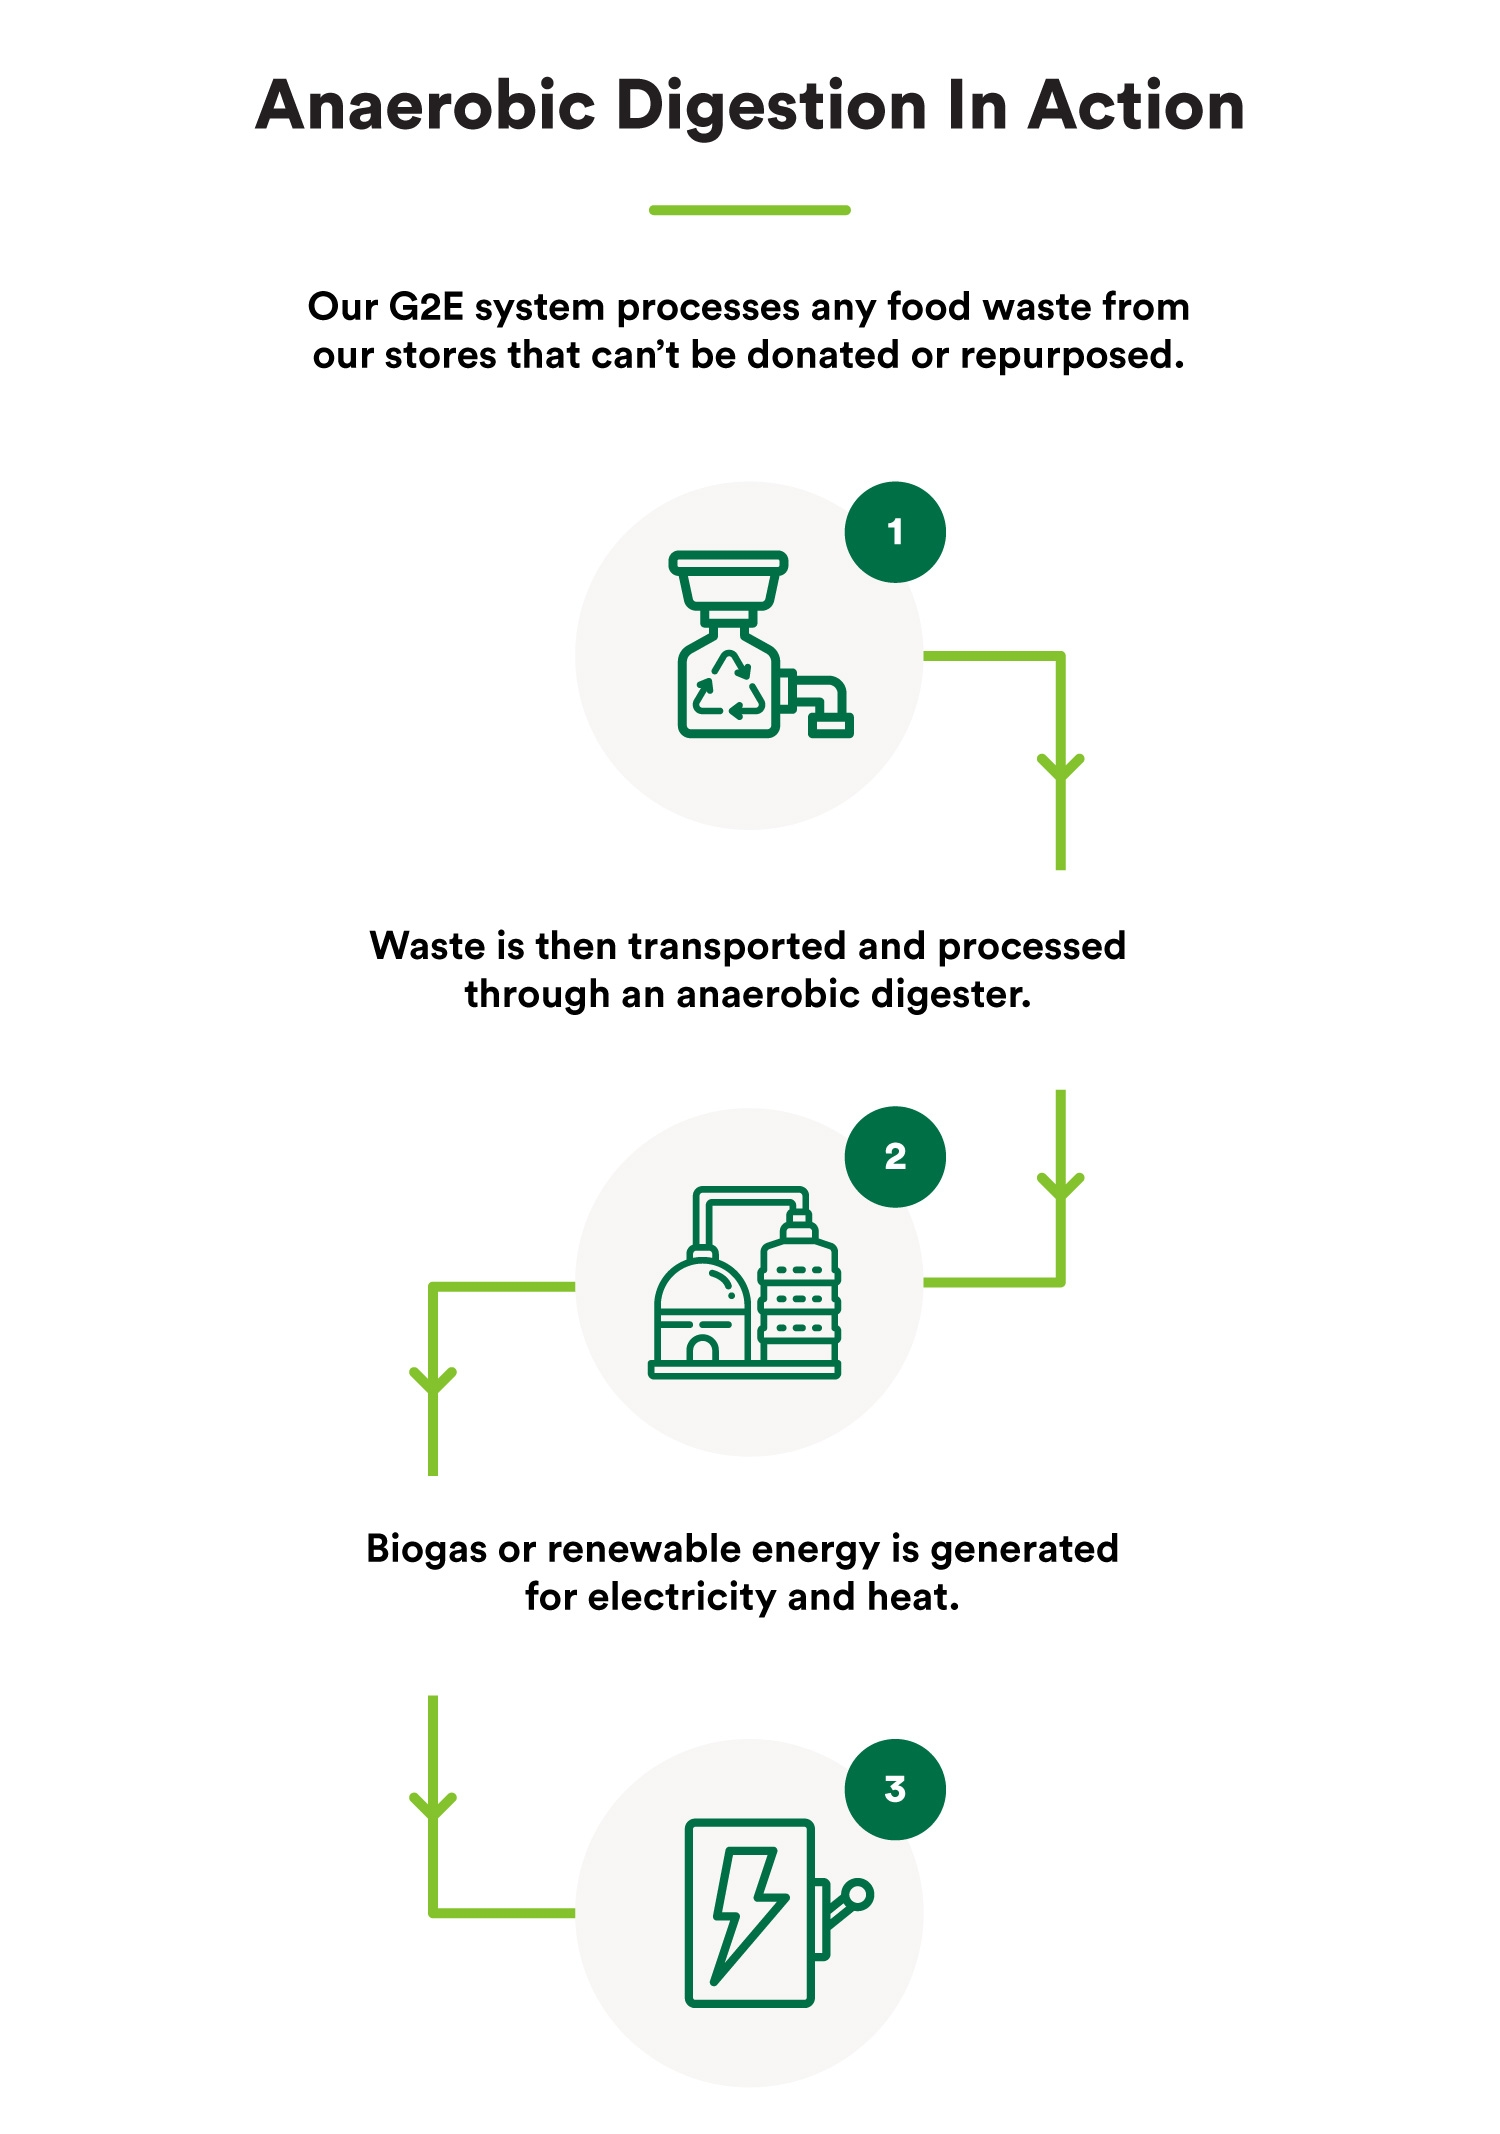 anaerobic digestion infographic: (1) Our G2E system processes food waste from whole foods market (2) Waste is transported to anaerobic digester (3) Biogas is generated